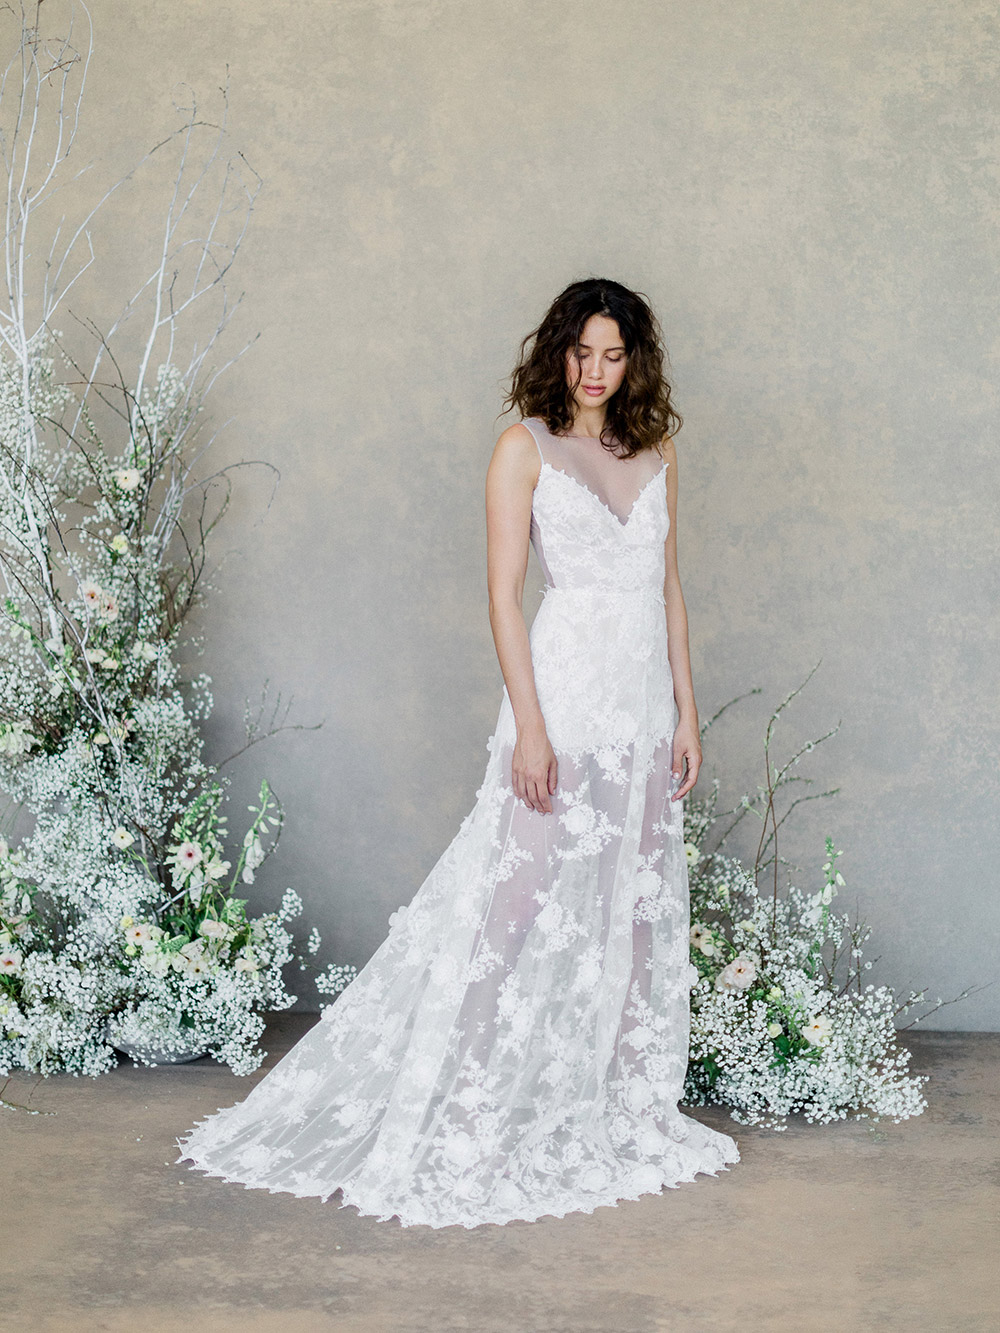 Dove – Claire Pettibone Spring 2019 Bridal Collection. www.theweddingnotebook.com